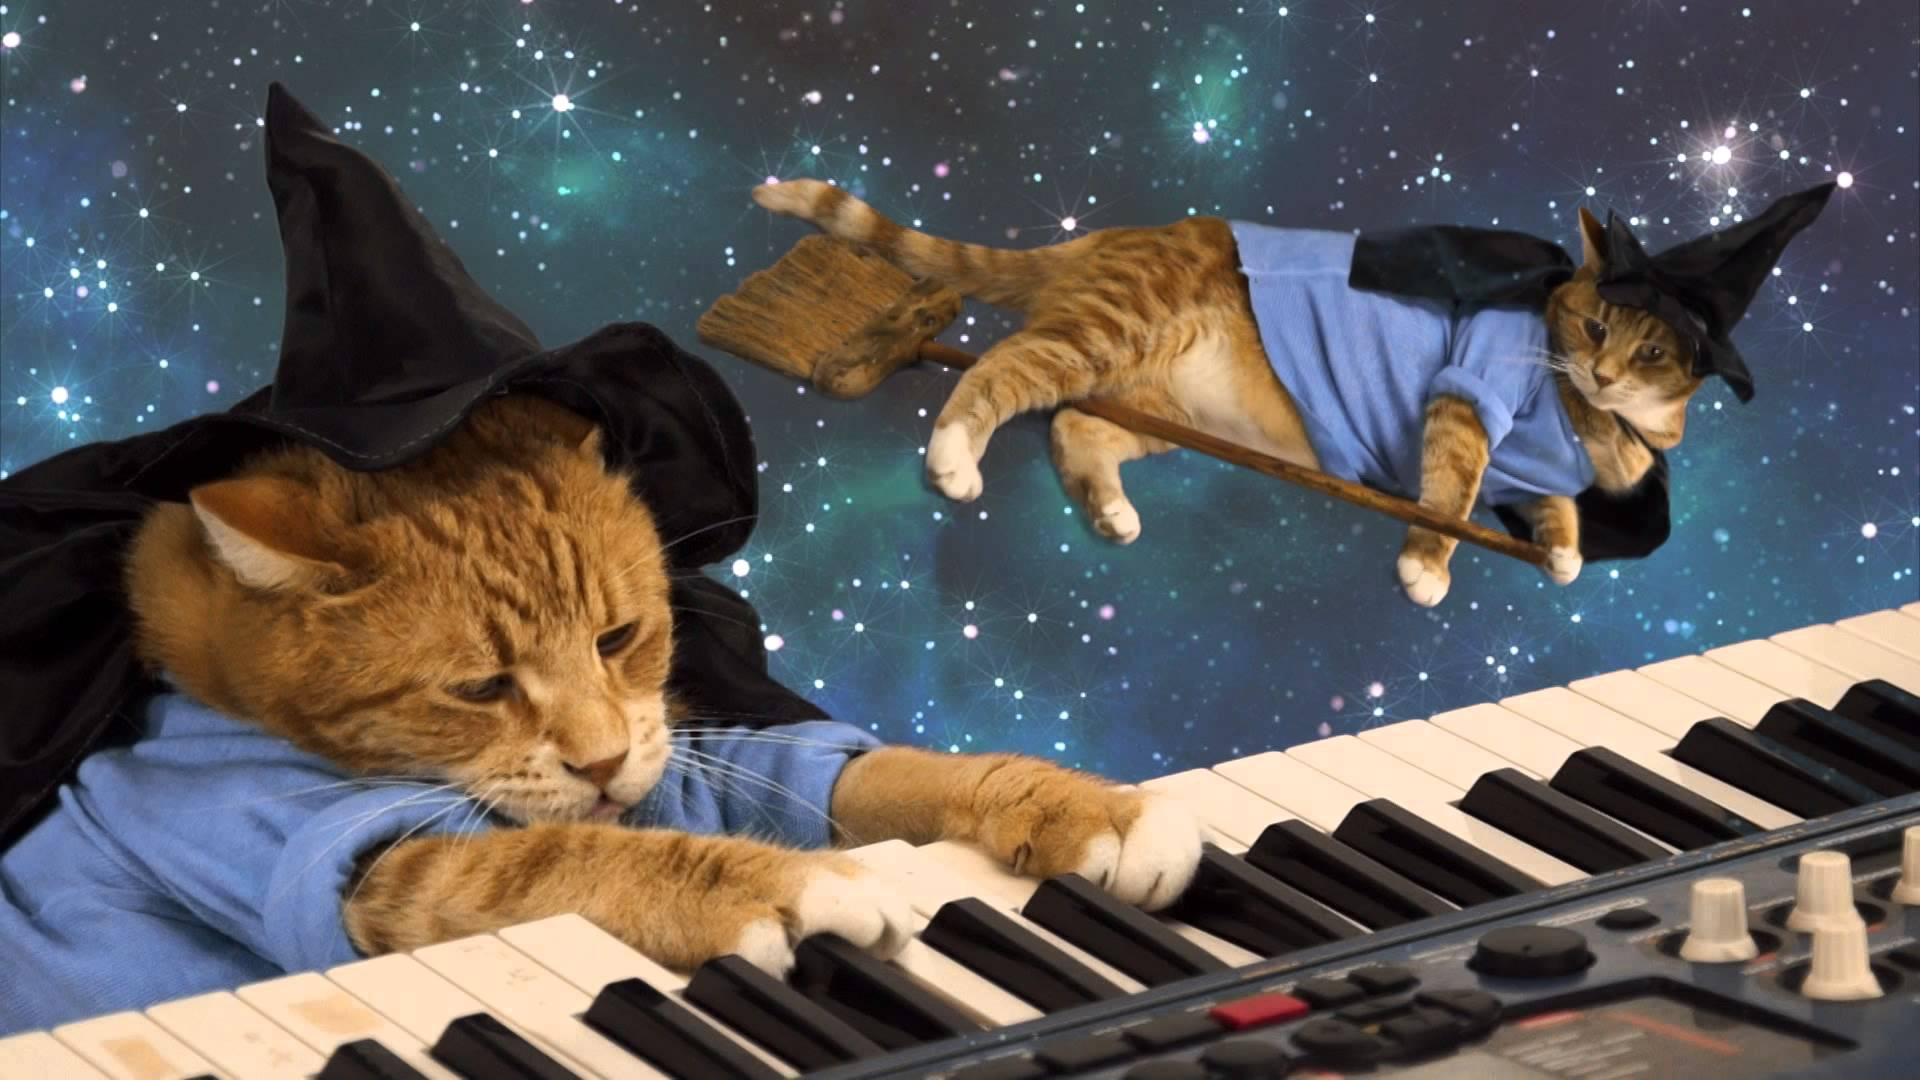 Download Sweet Quotes Wallpapers Download Keyboard Cat Wallpaper Gallery